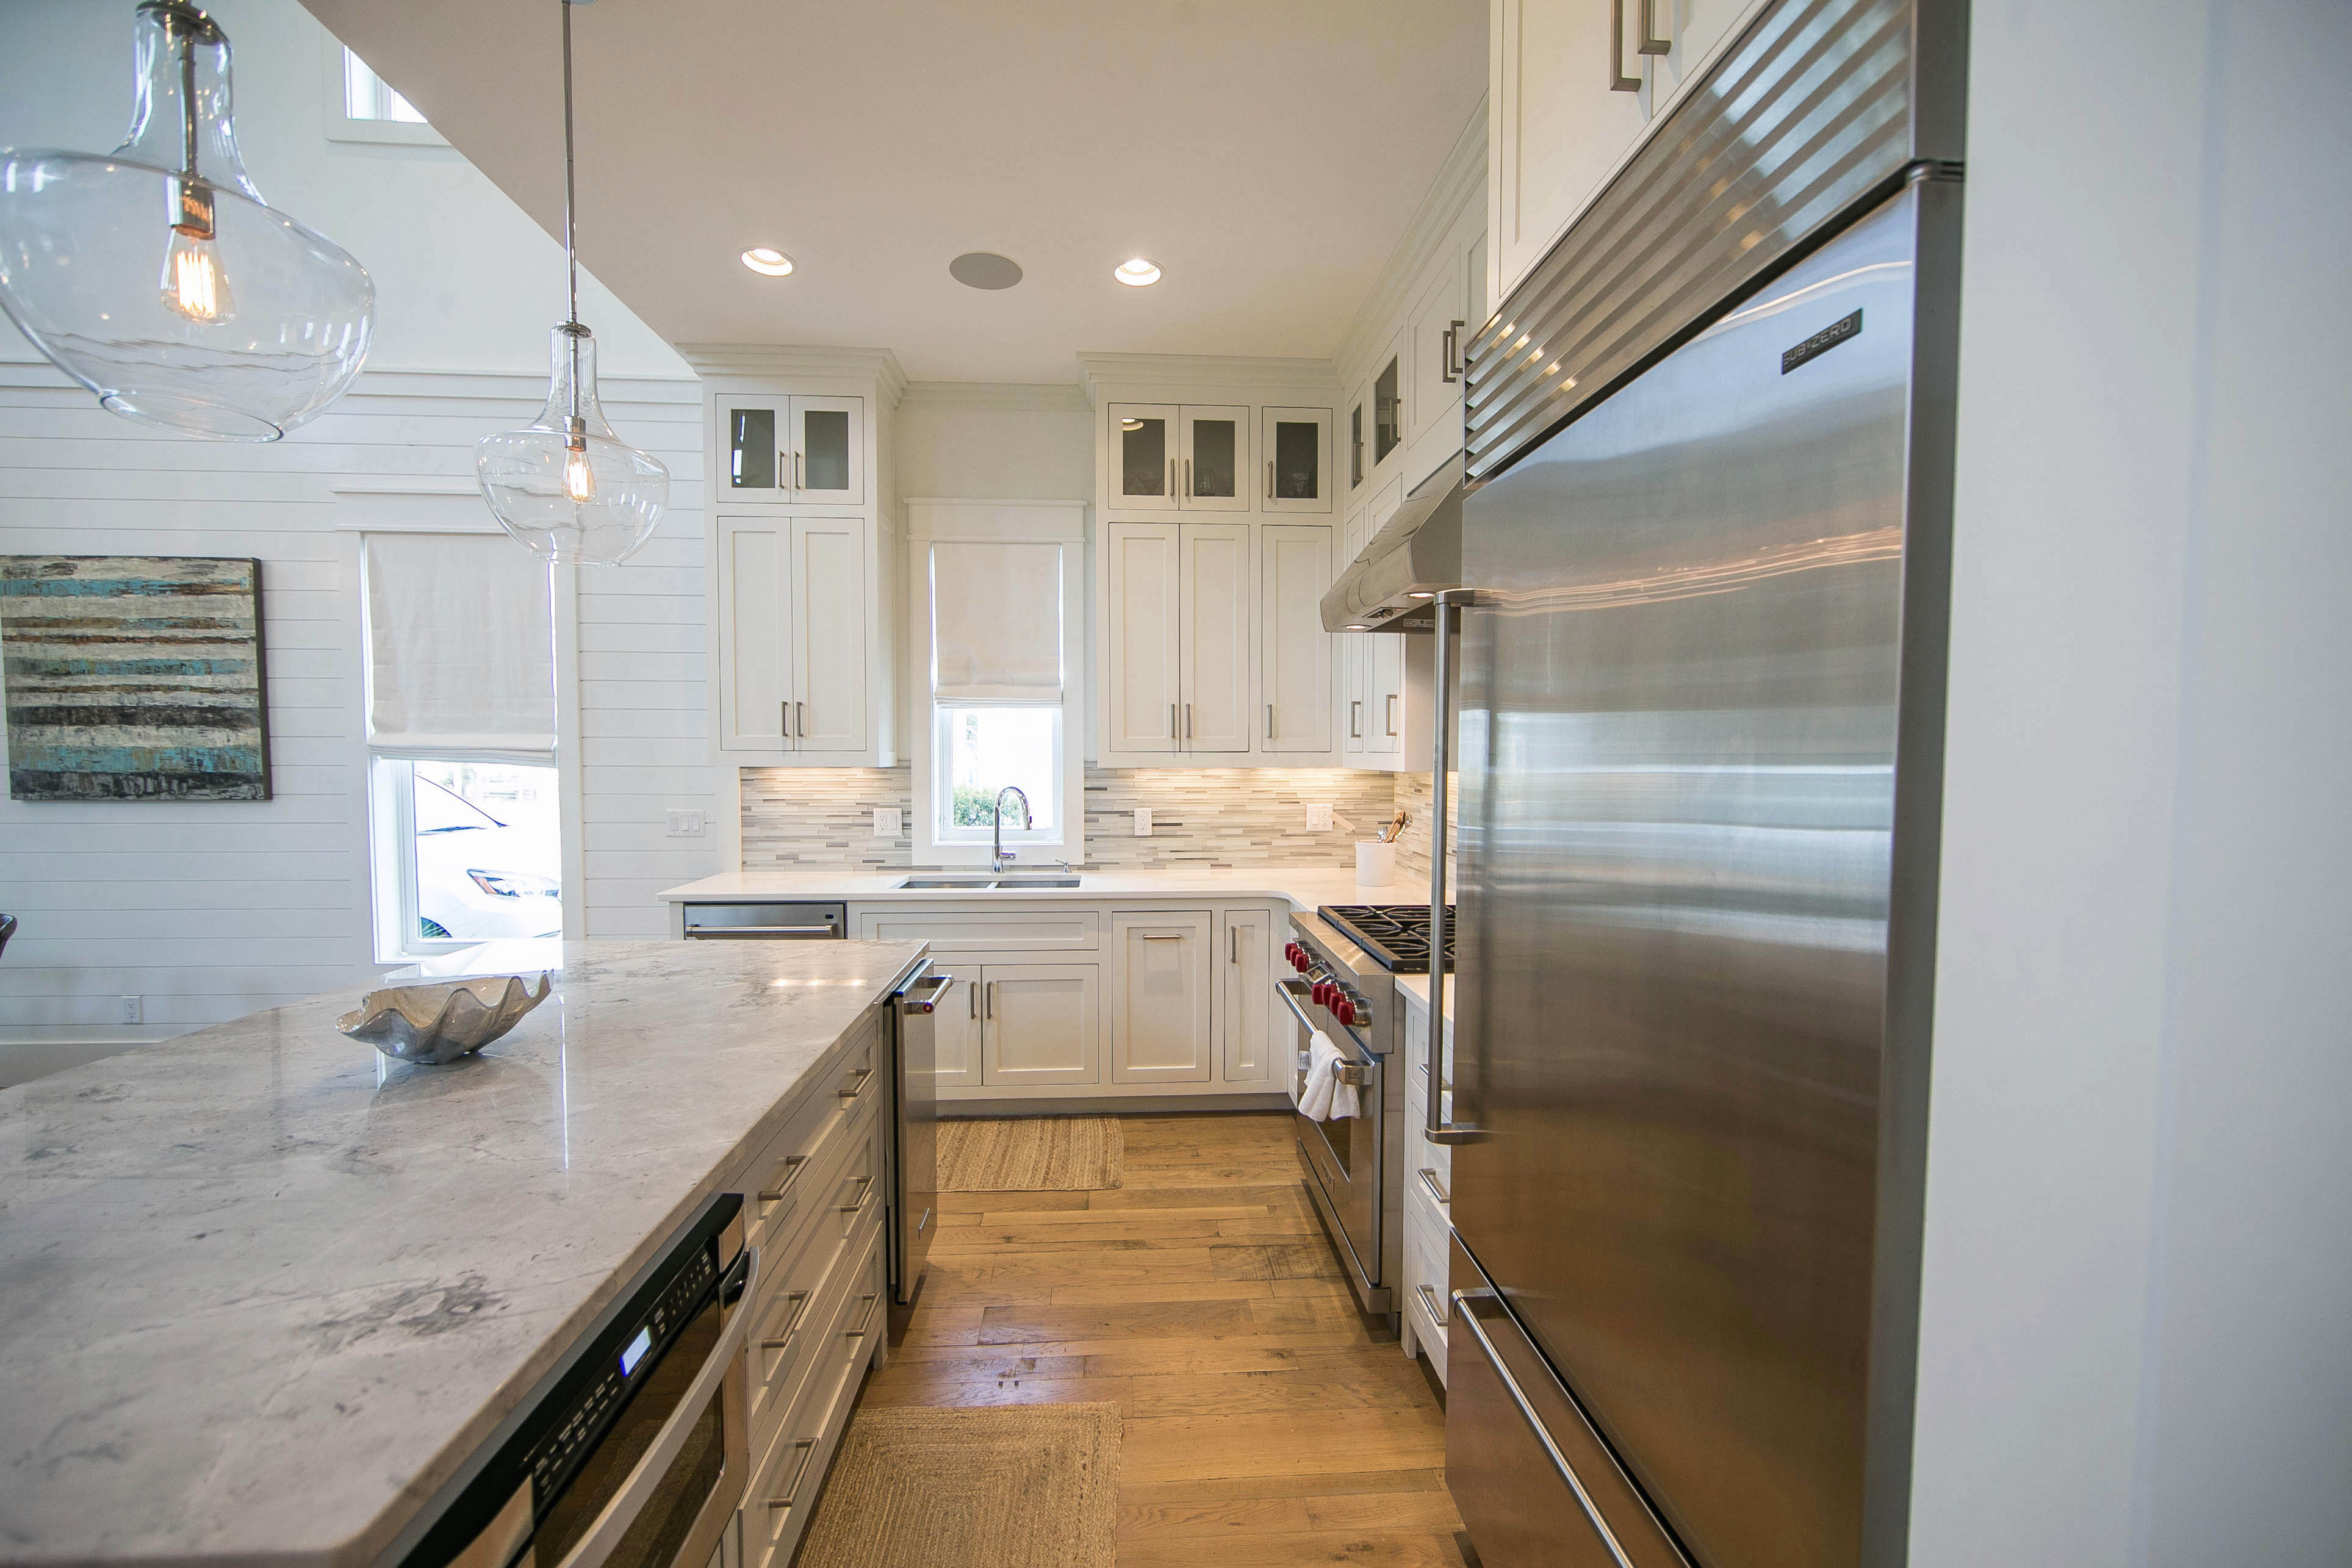 The kitchen is equipped with all stainless steel appliances.